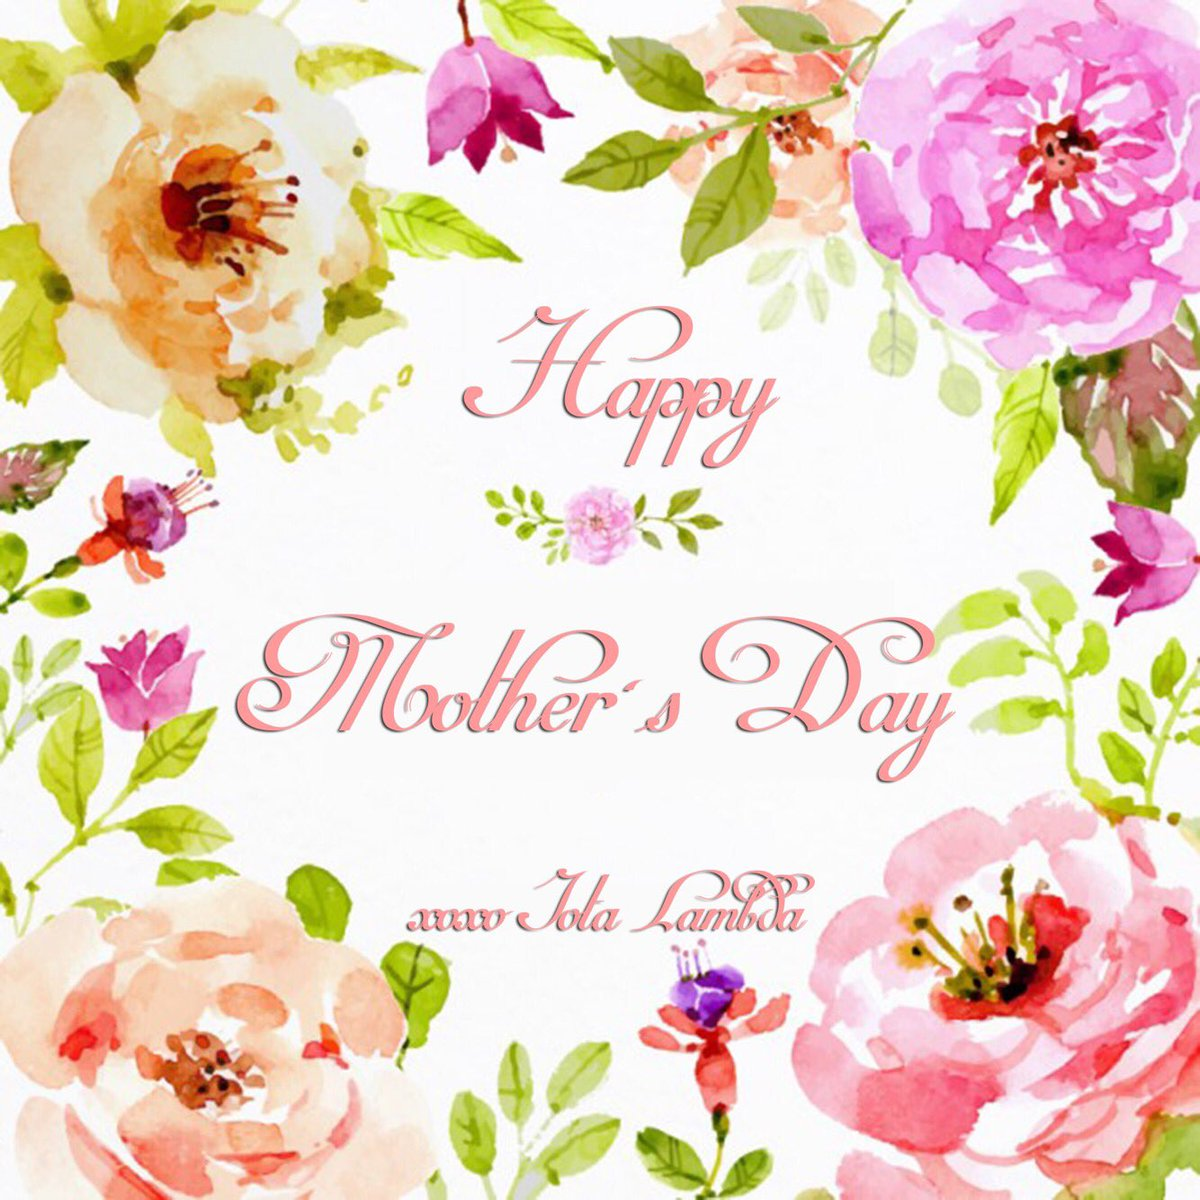 Iota lambda on twitter the illustrious iota lambda chapter would iota lambda on twitter the illustrious iota lambda chapter would like to wish all the mothers a happy mothers day thank you for all your endless kristyandbryce Gallery